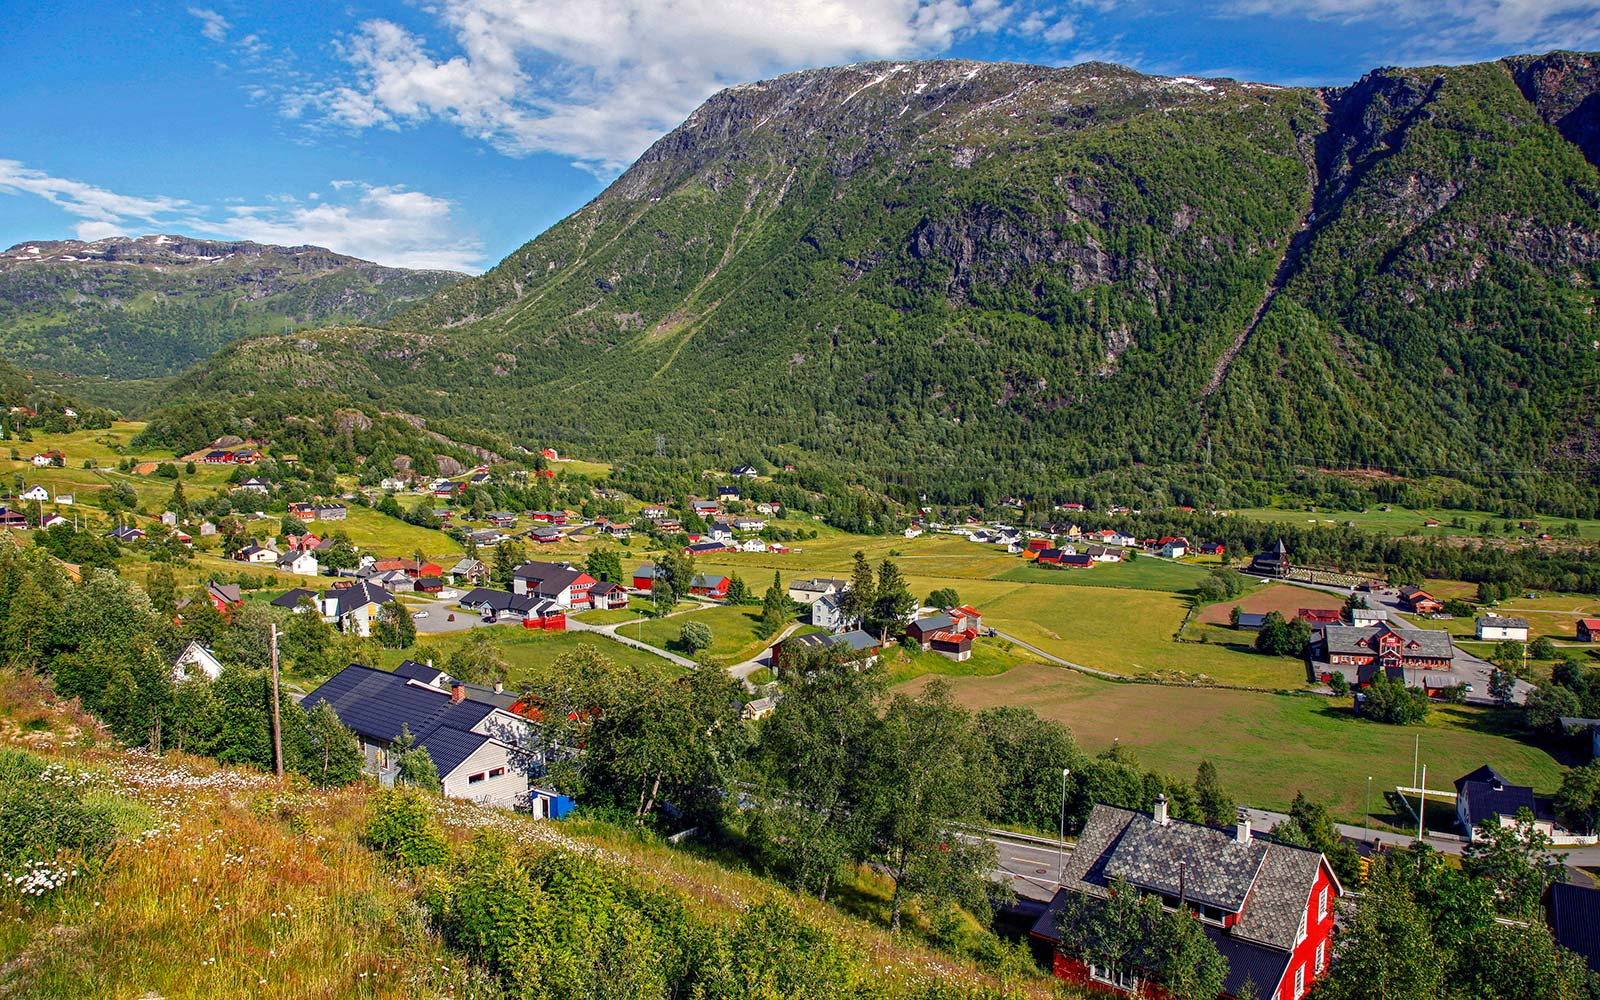 Norway's Largest Theme Park Will Be the 'Viking Capital of the World'